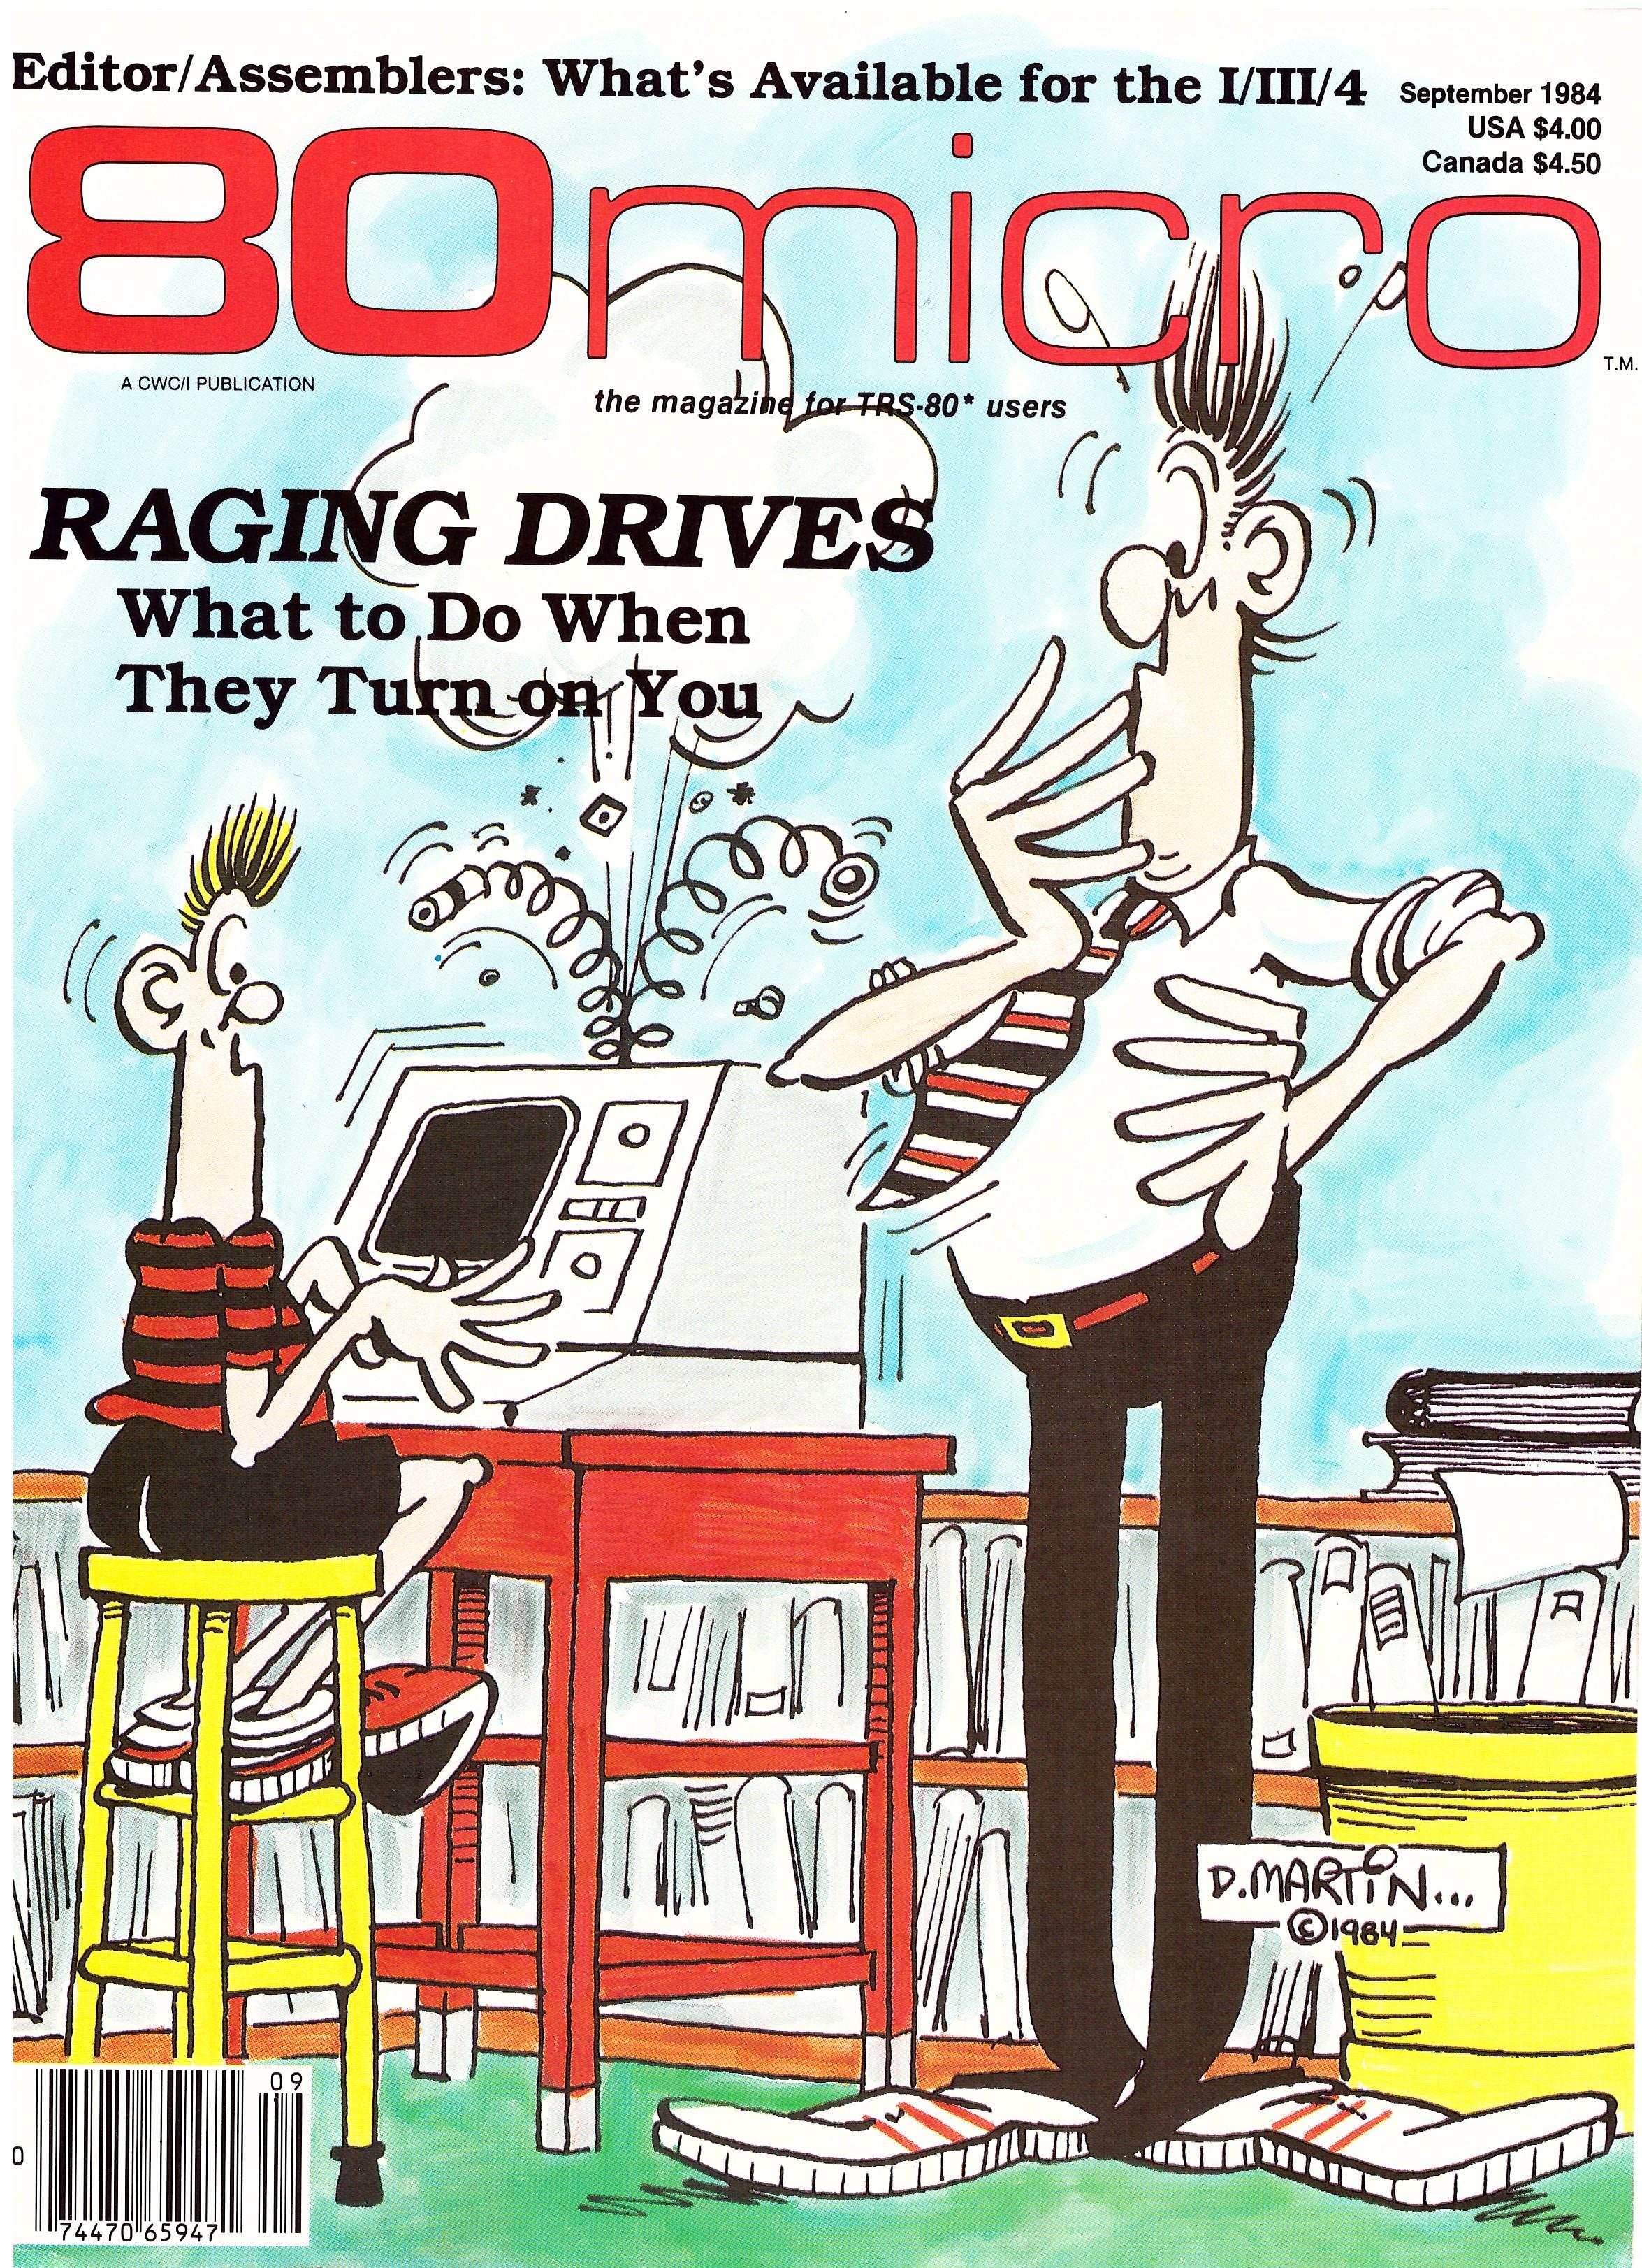 80 micro Magazine with Don Martin Artwork • USA